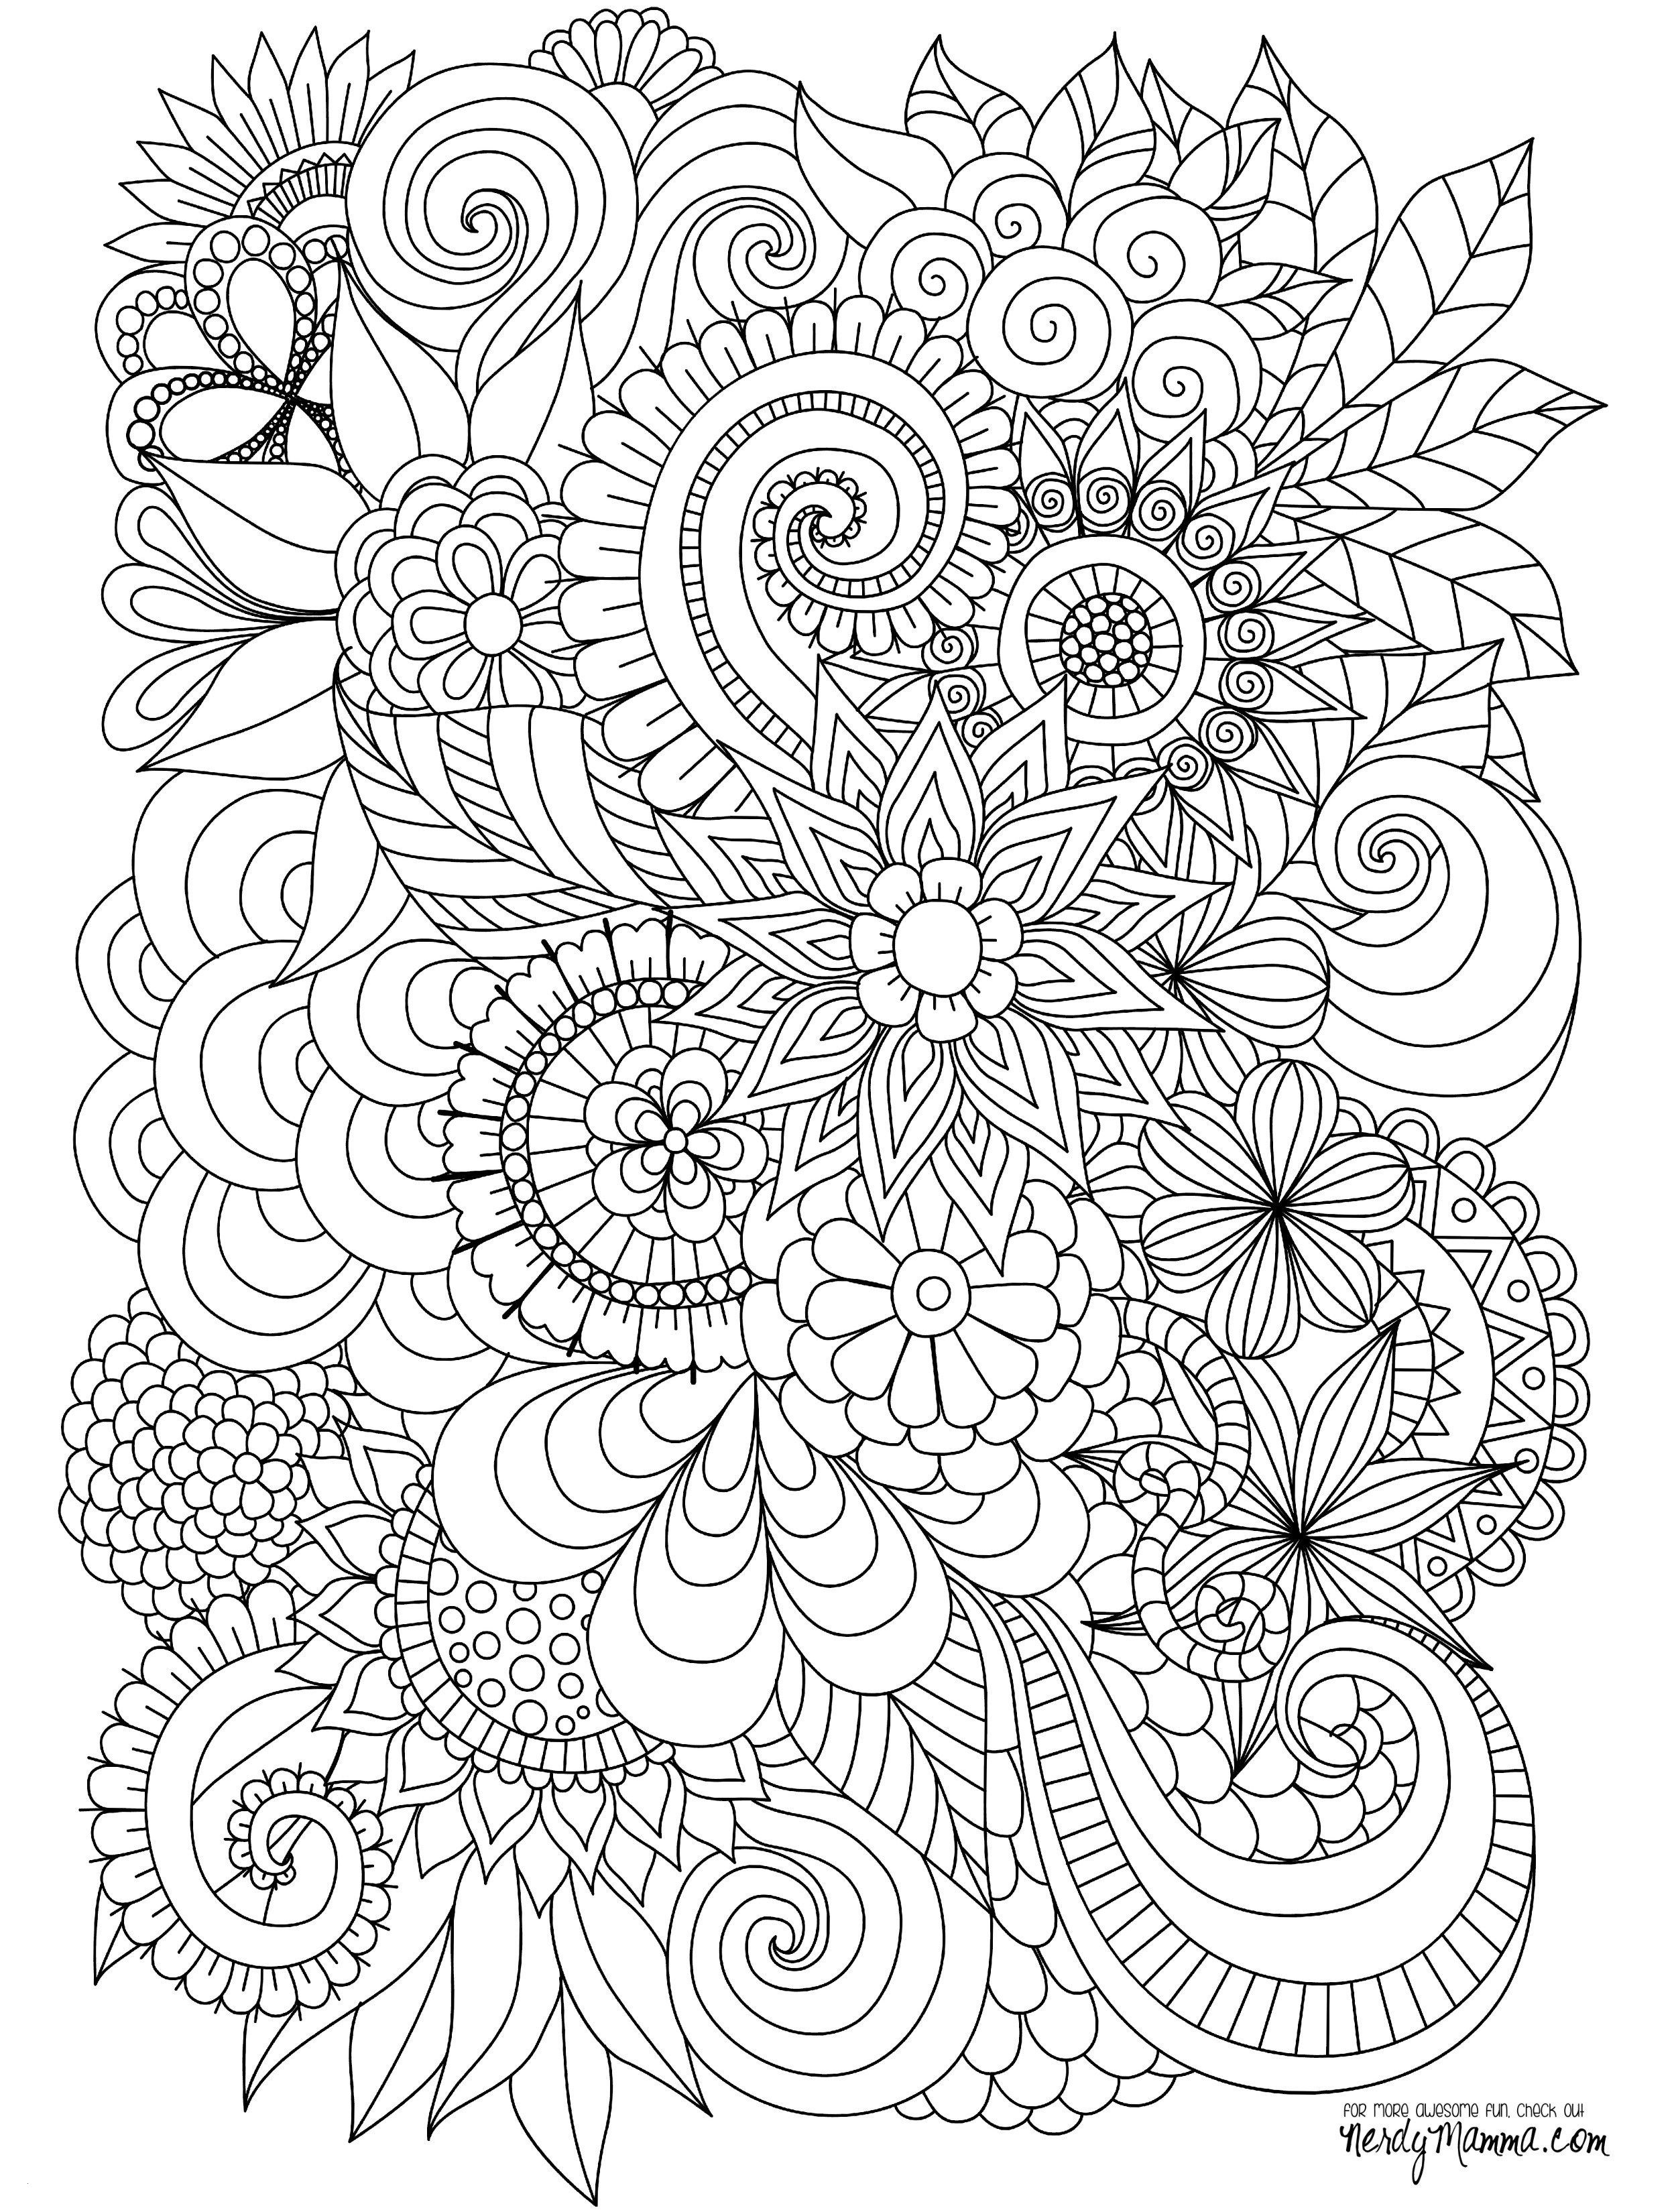 abstract printable coloring pages Collection-Flowers Abstract Coloring pages colouring adult detailed advanced 13-i